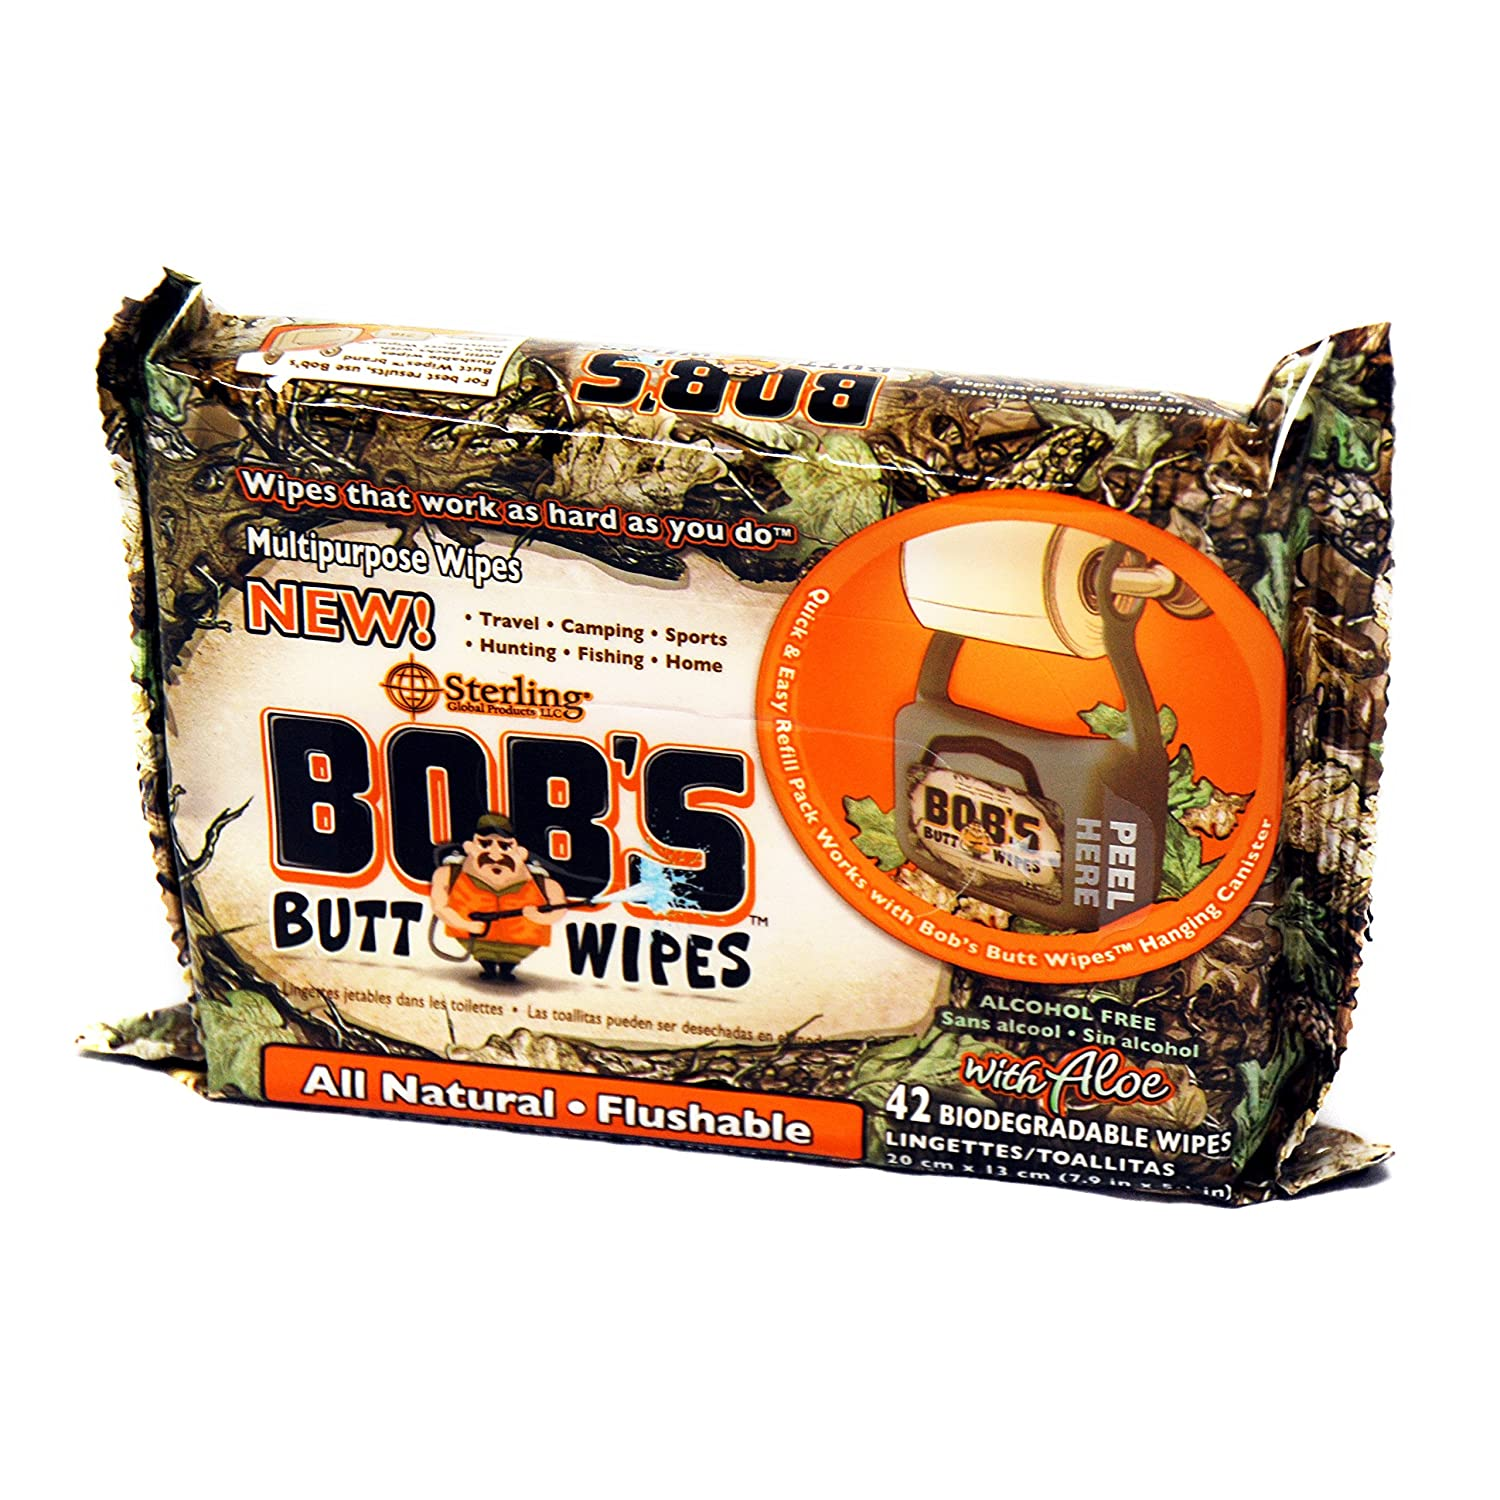 Amazon.com: Bobs Butt Wipes Hanging Dispenser & 4 Packs of 42ct. Flushable Wipes, Unscented Biodegradable Personal Hygiene Wipes: Health & Personal Care